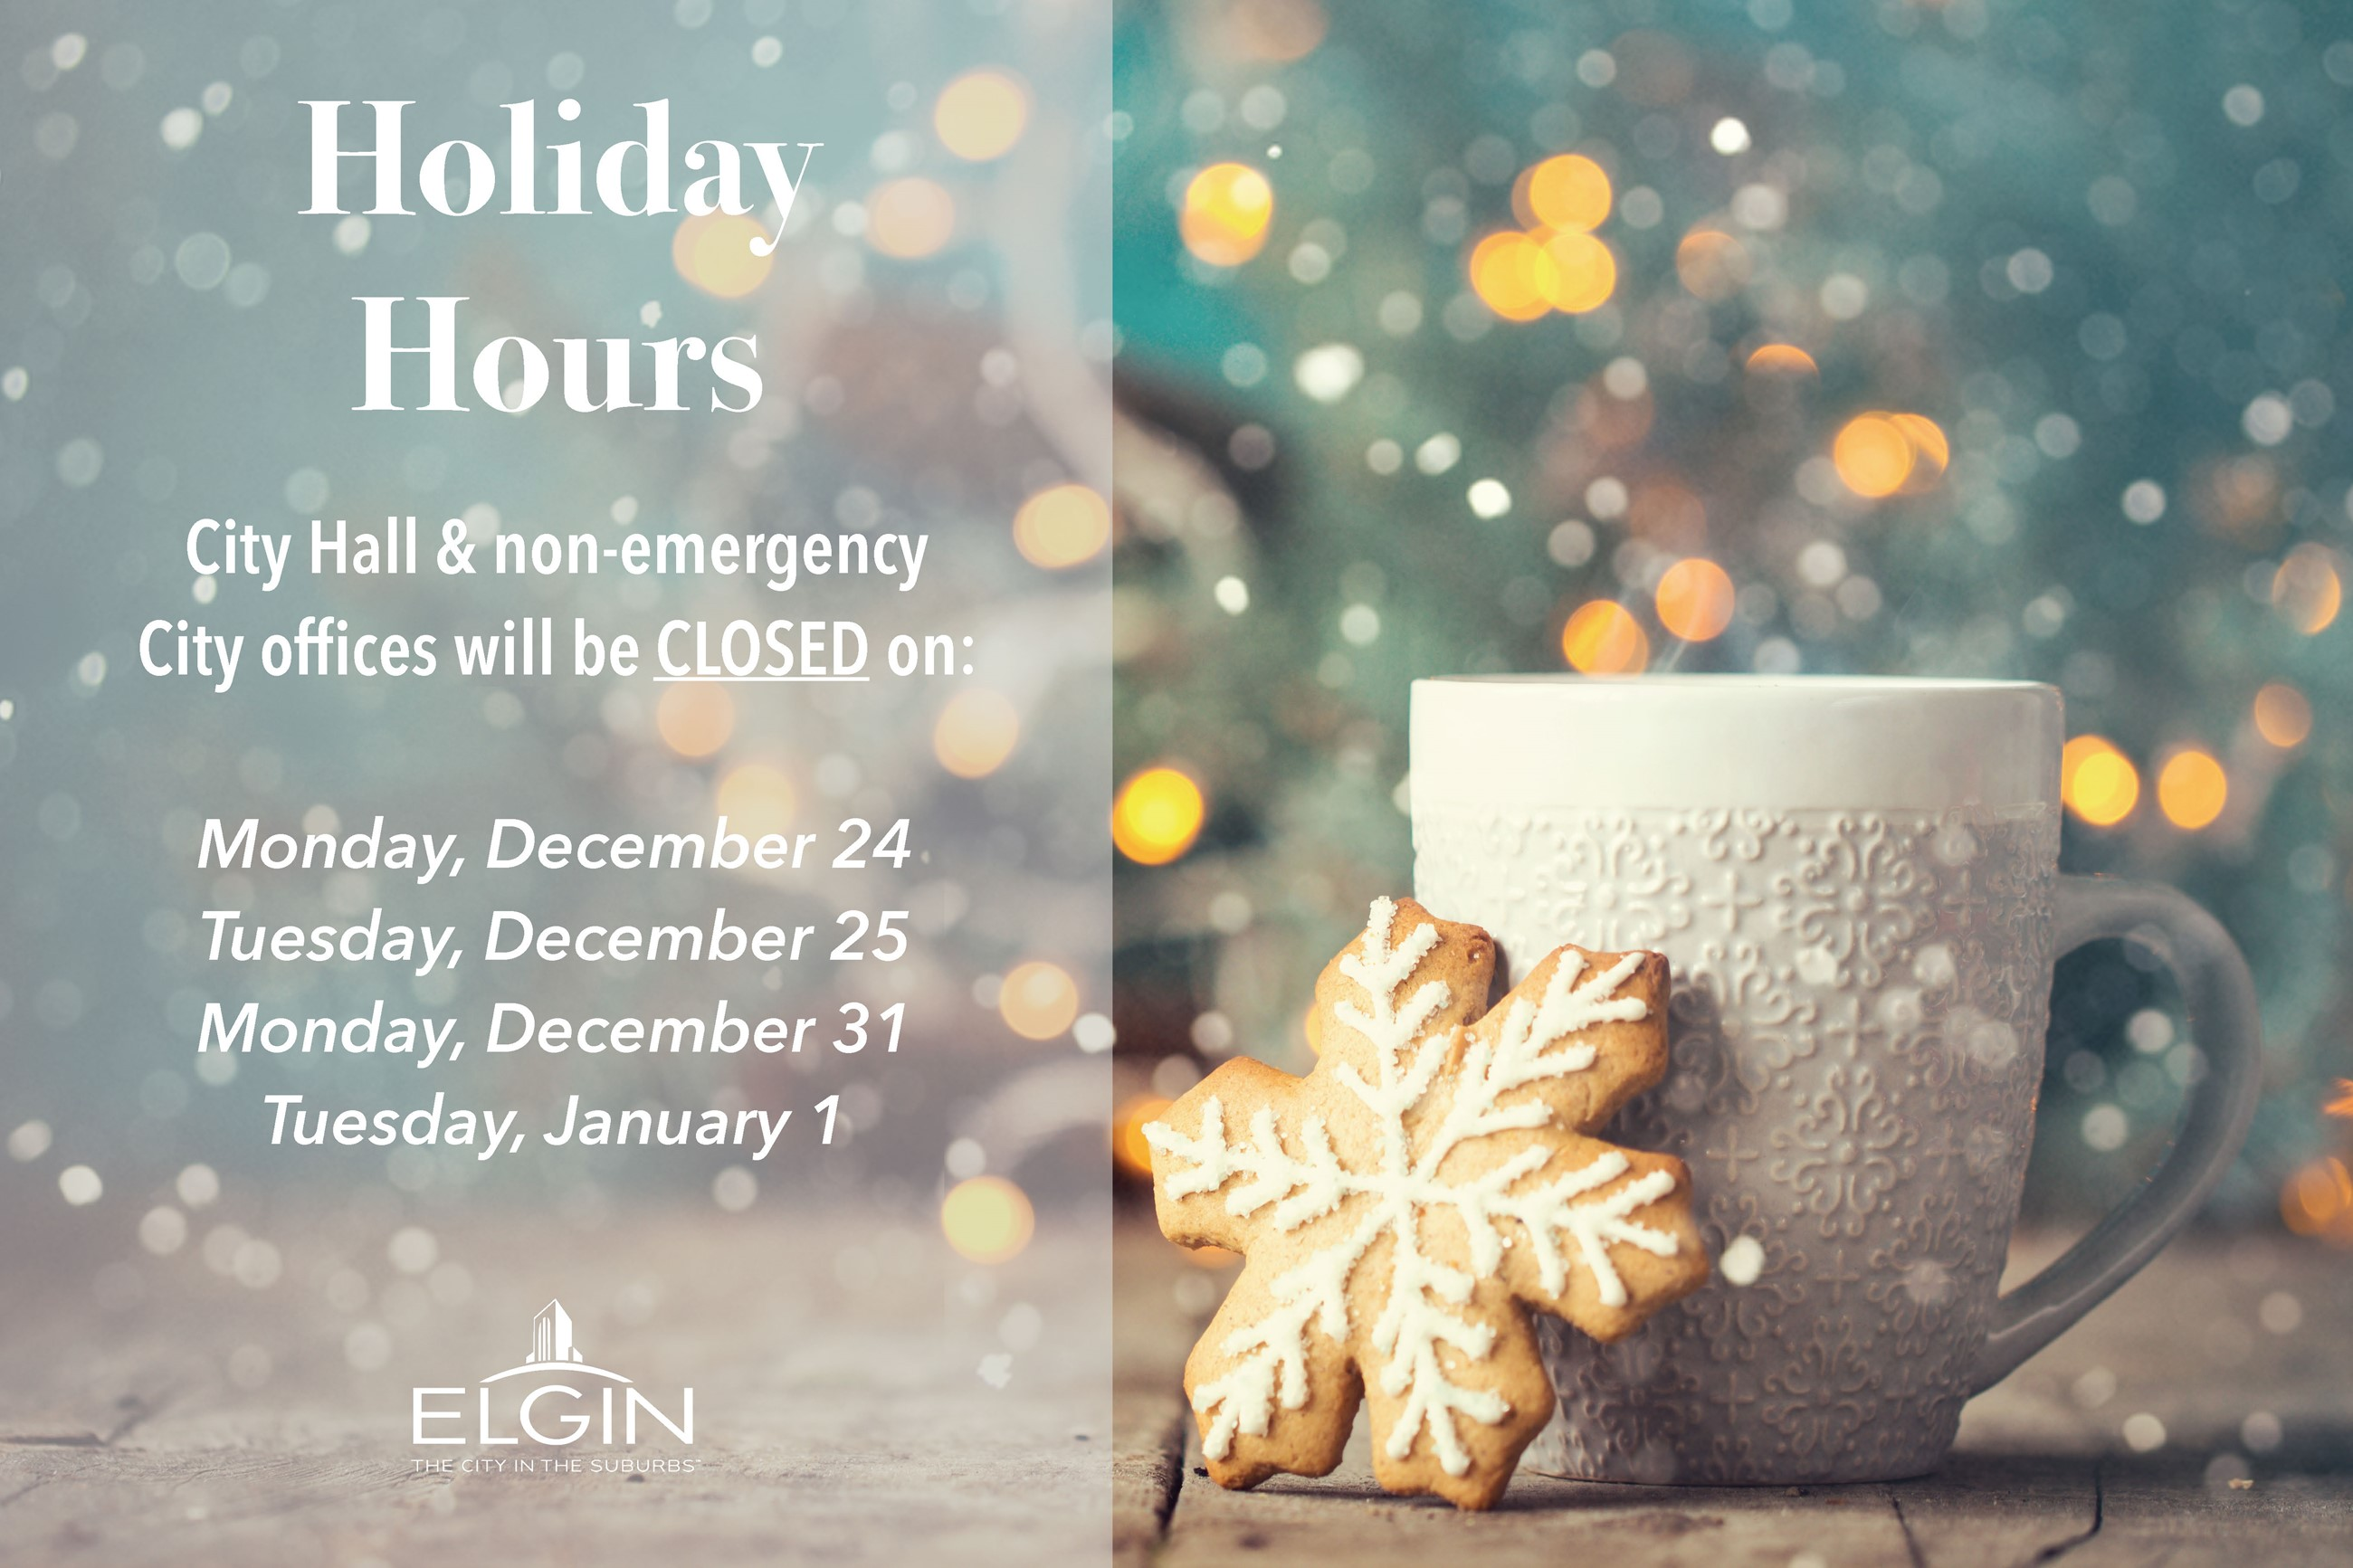 Holiday Hours for City Hall and non-emergency city offices